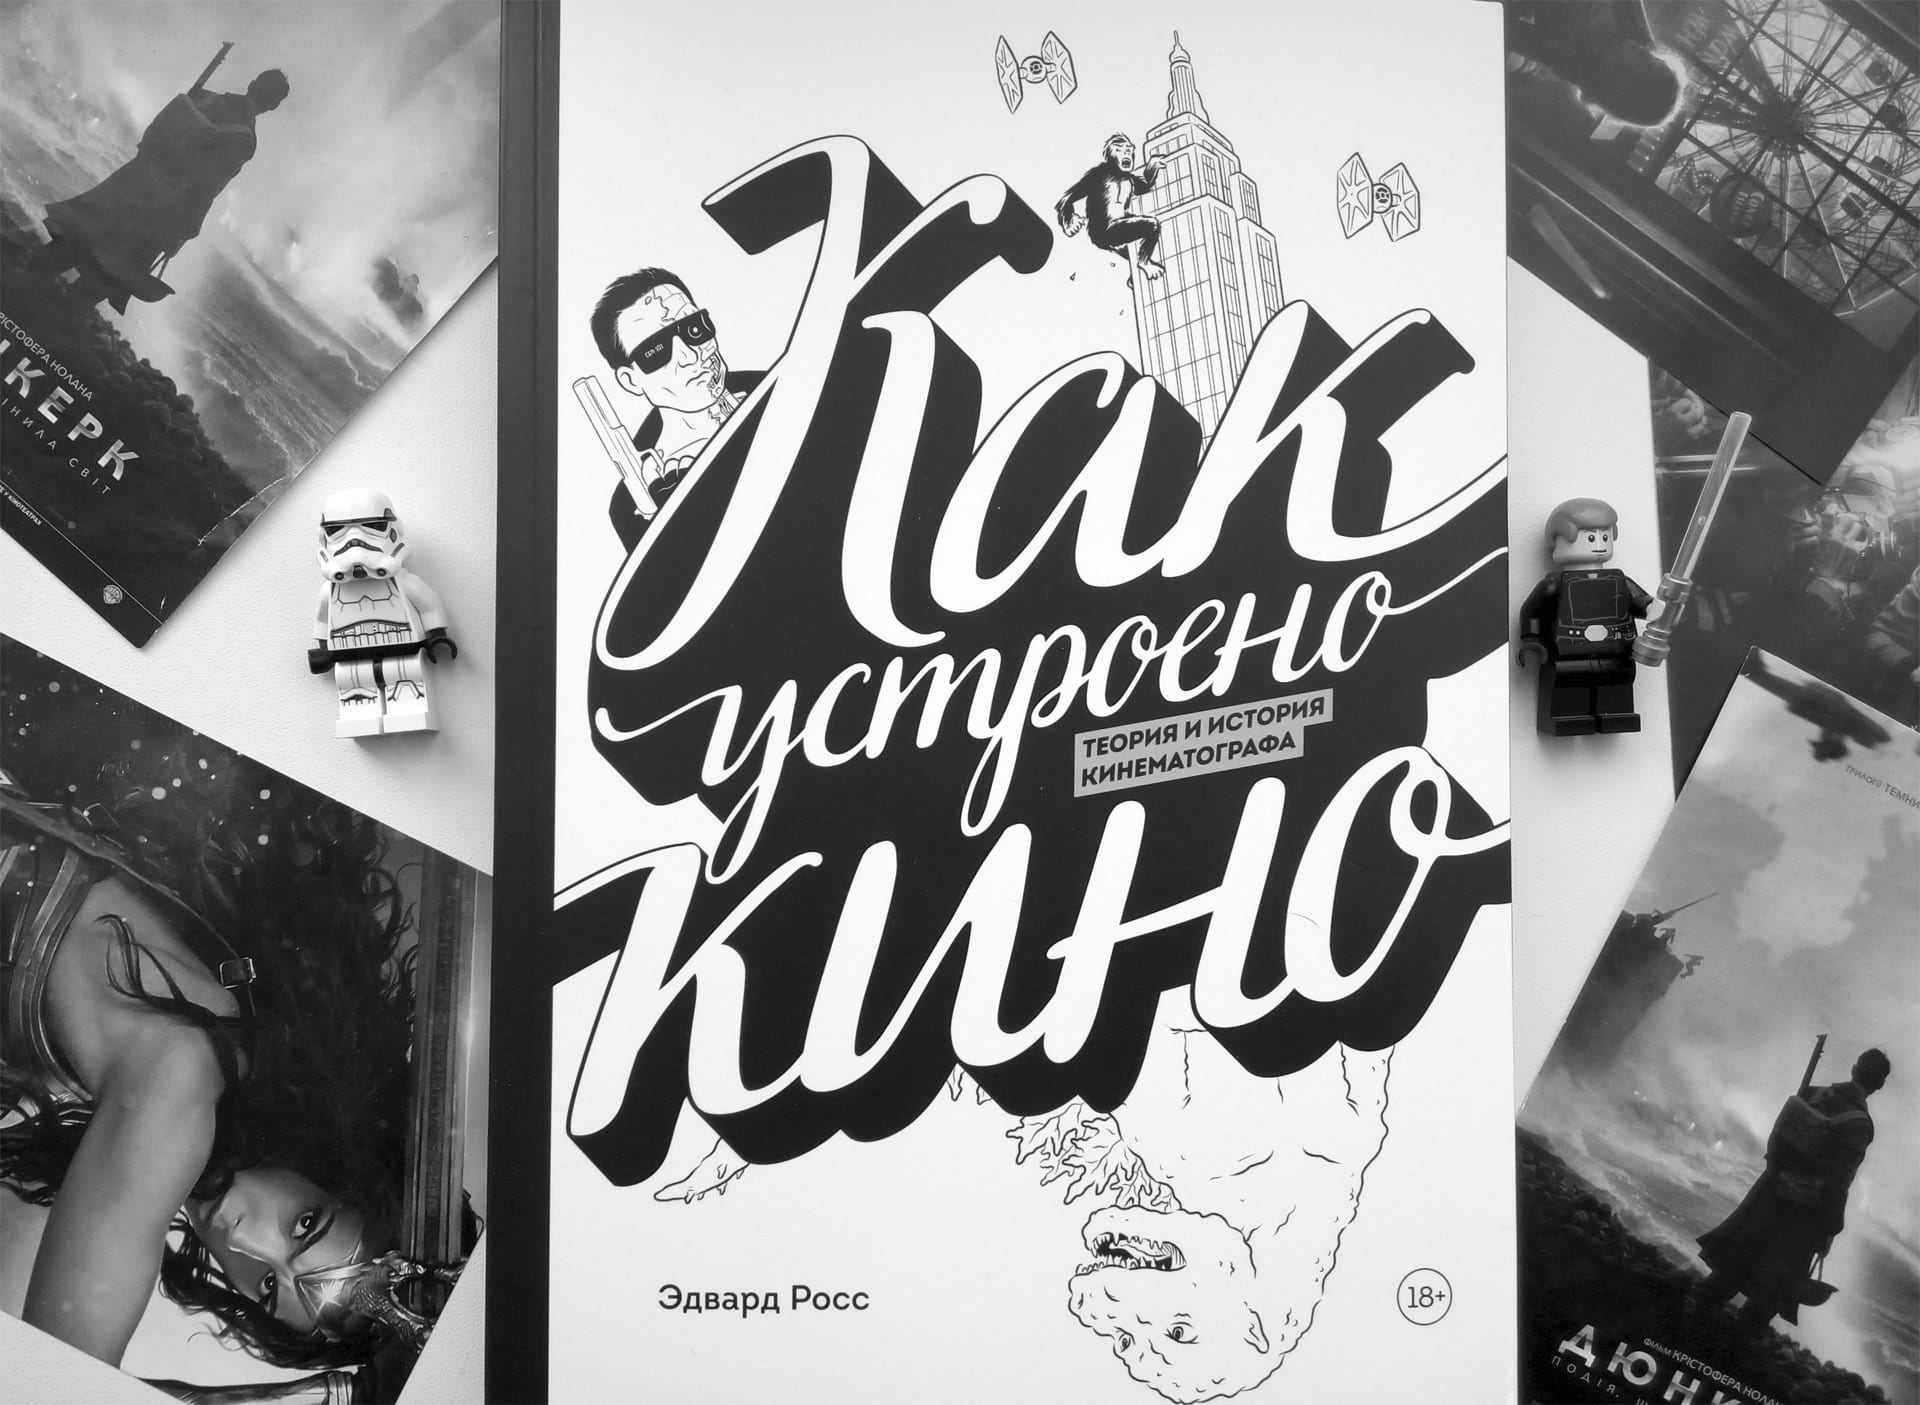 filmish-a-graphic-journey-through-film-by-edward-ross-kak-ustroeno-kino-mif-black-and-white